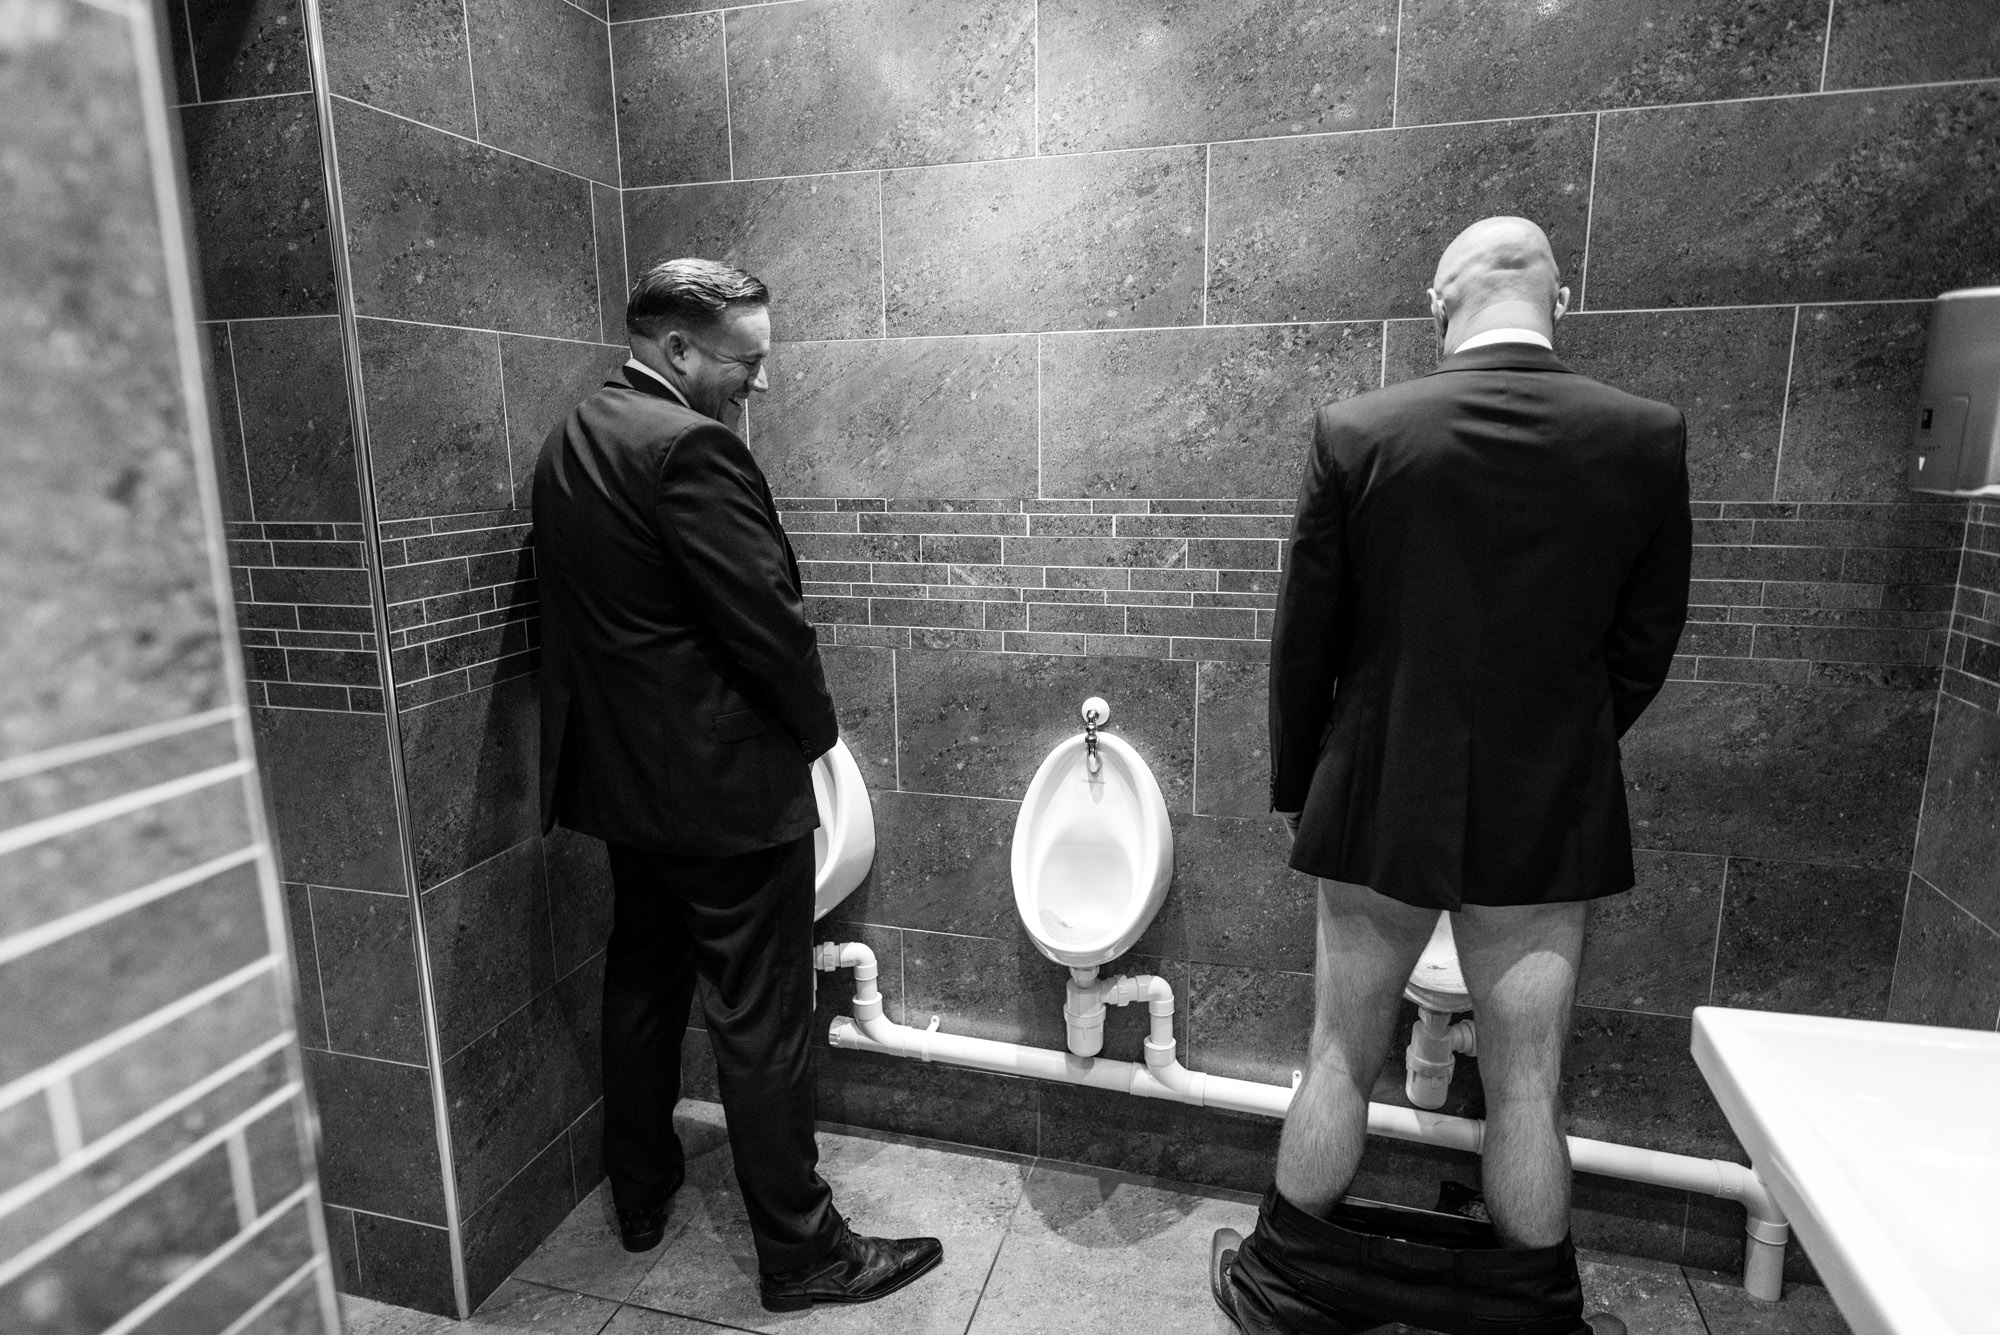 Two wedding guests in the toilet